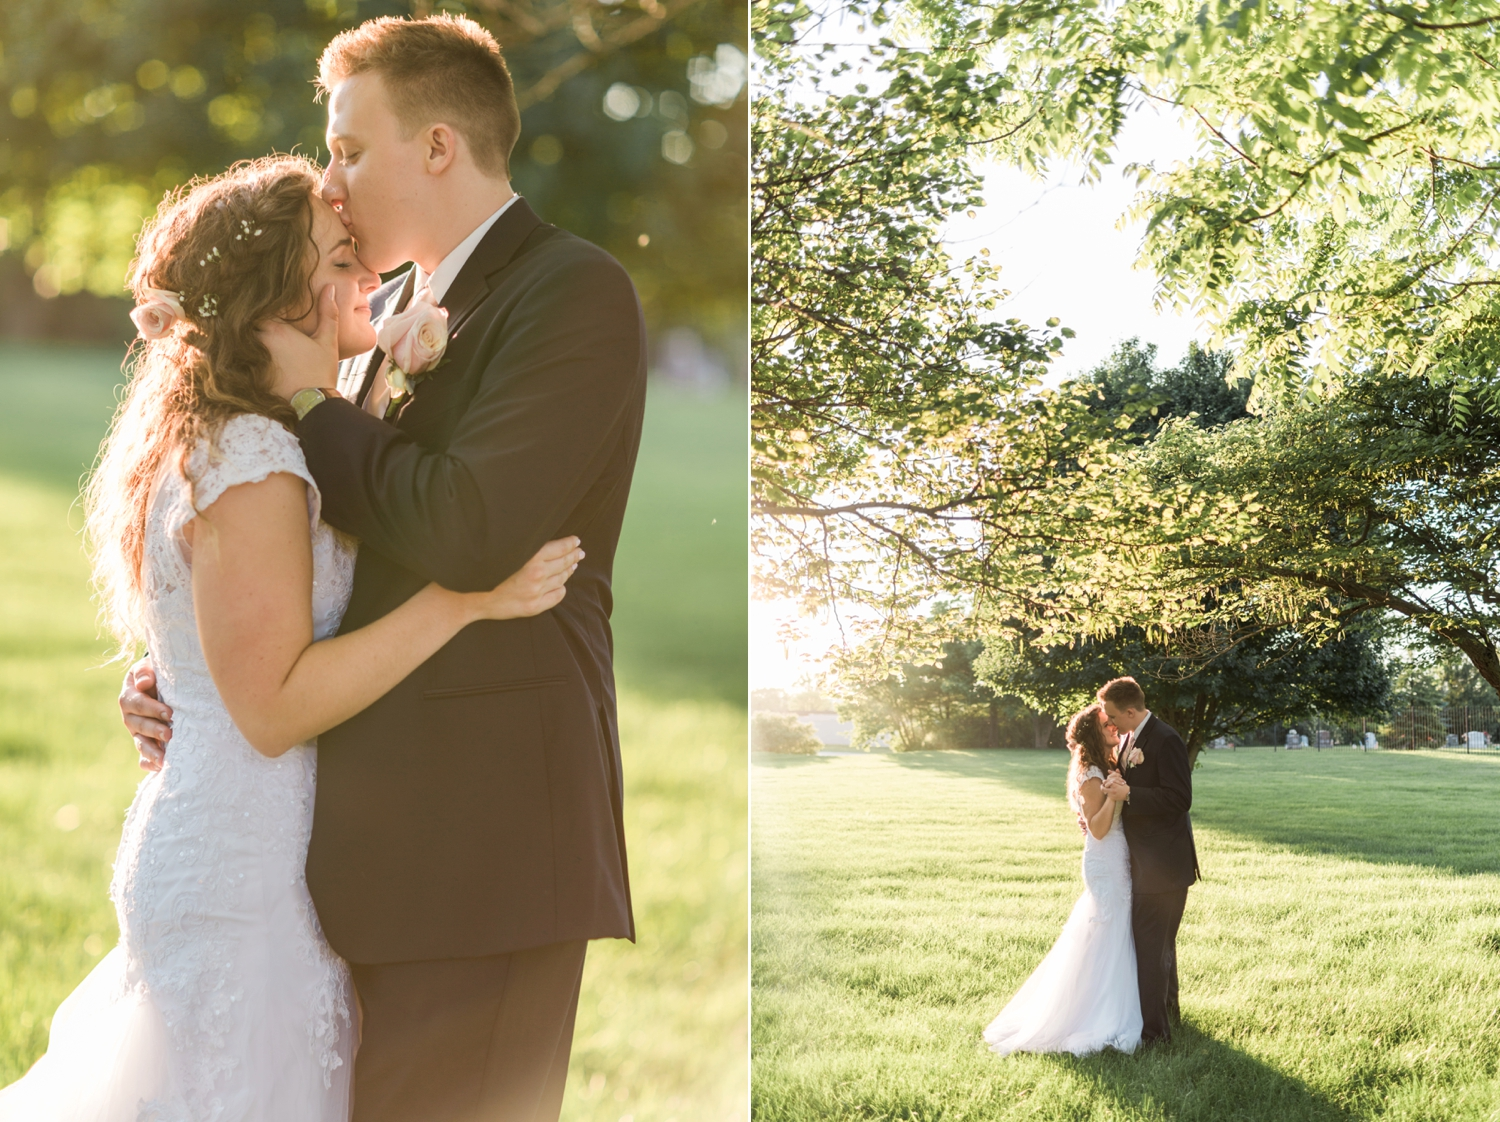 Community_Life_Center_Indianapolis_Indiana_Wedding_Photographer_Chloe_Luka_Photography_6995.jpg